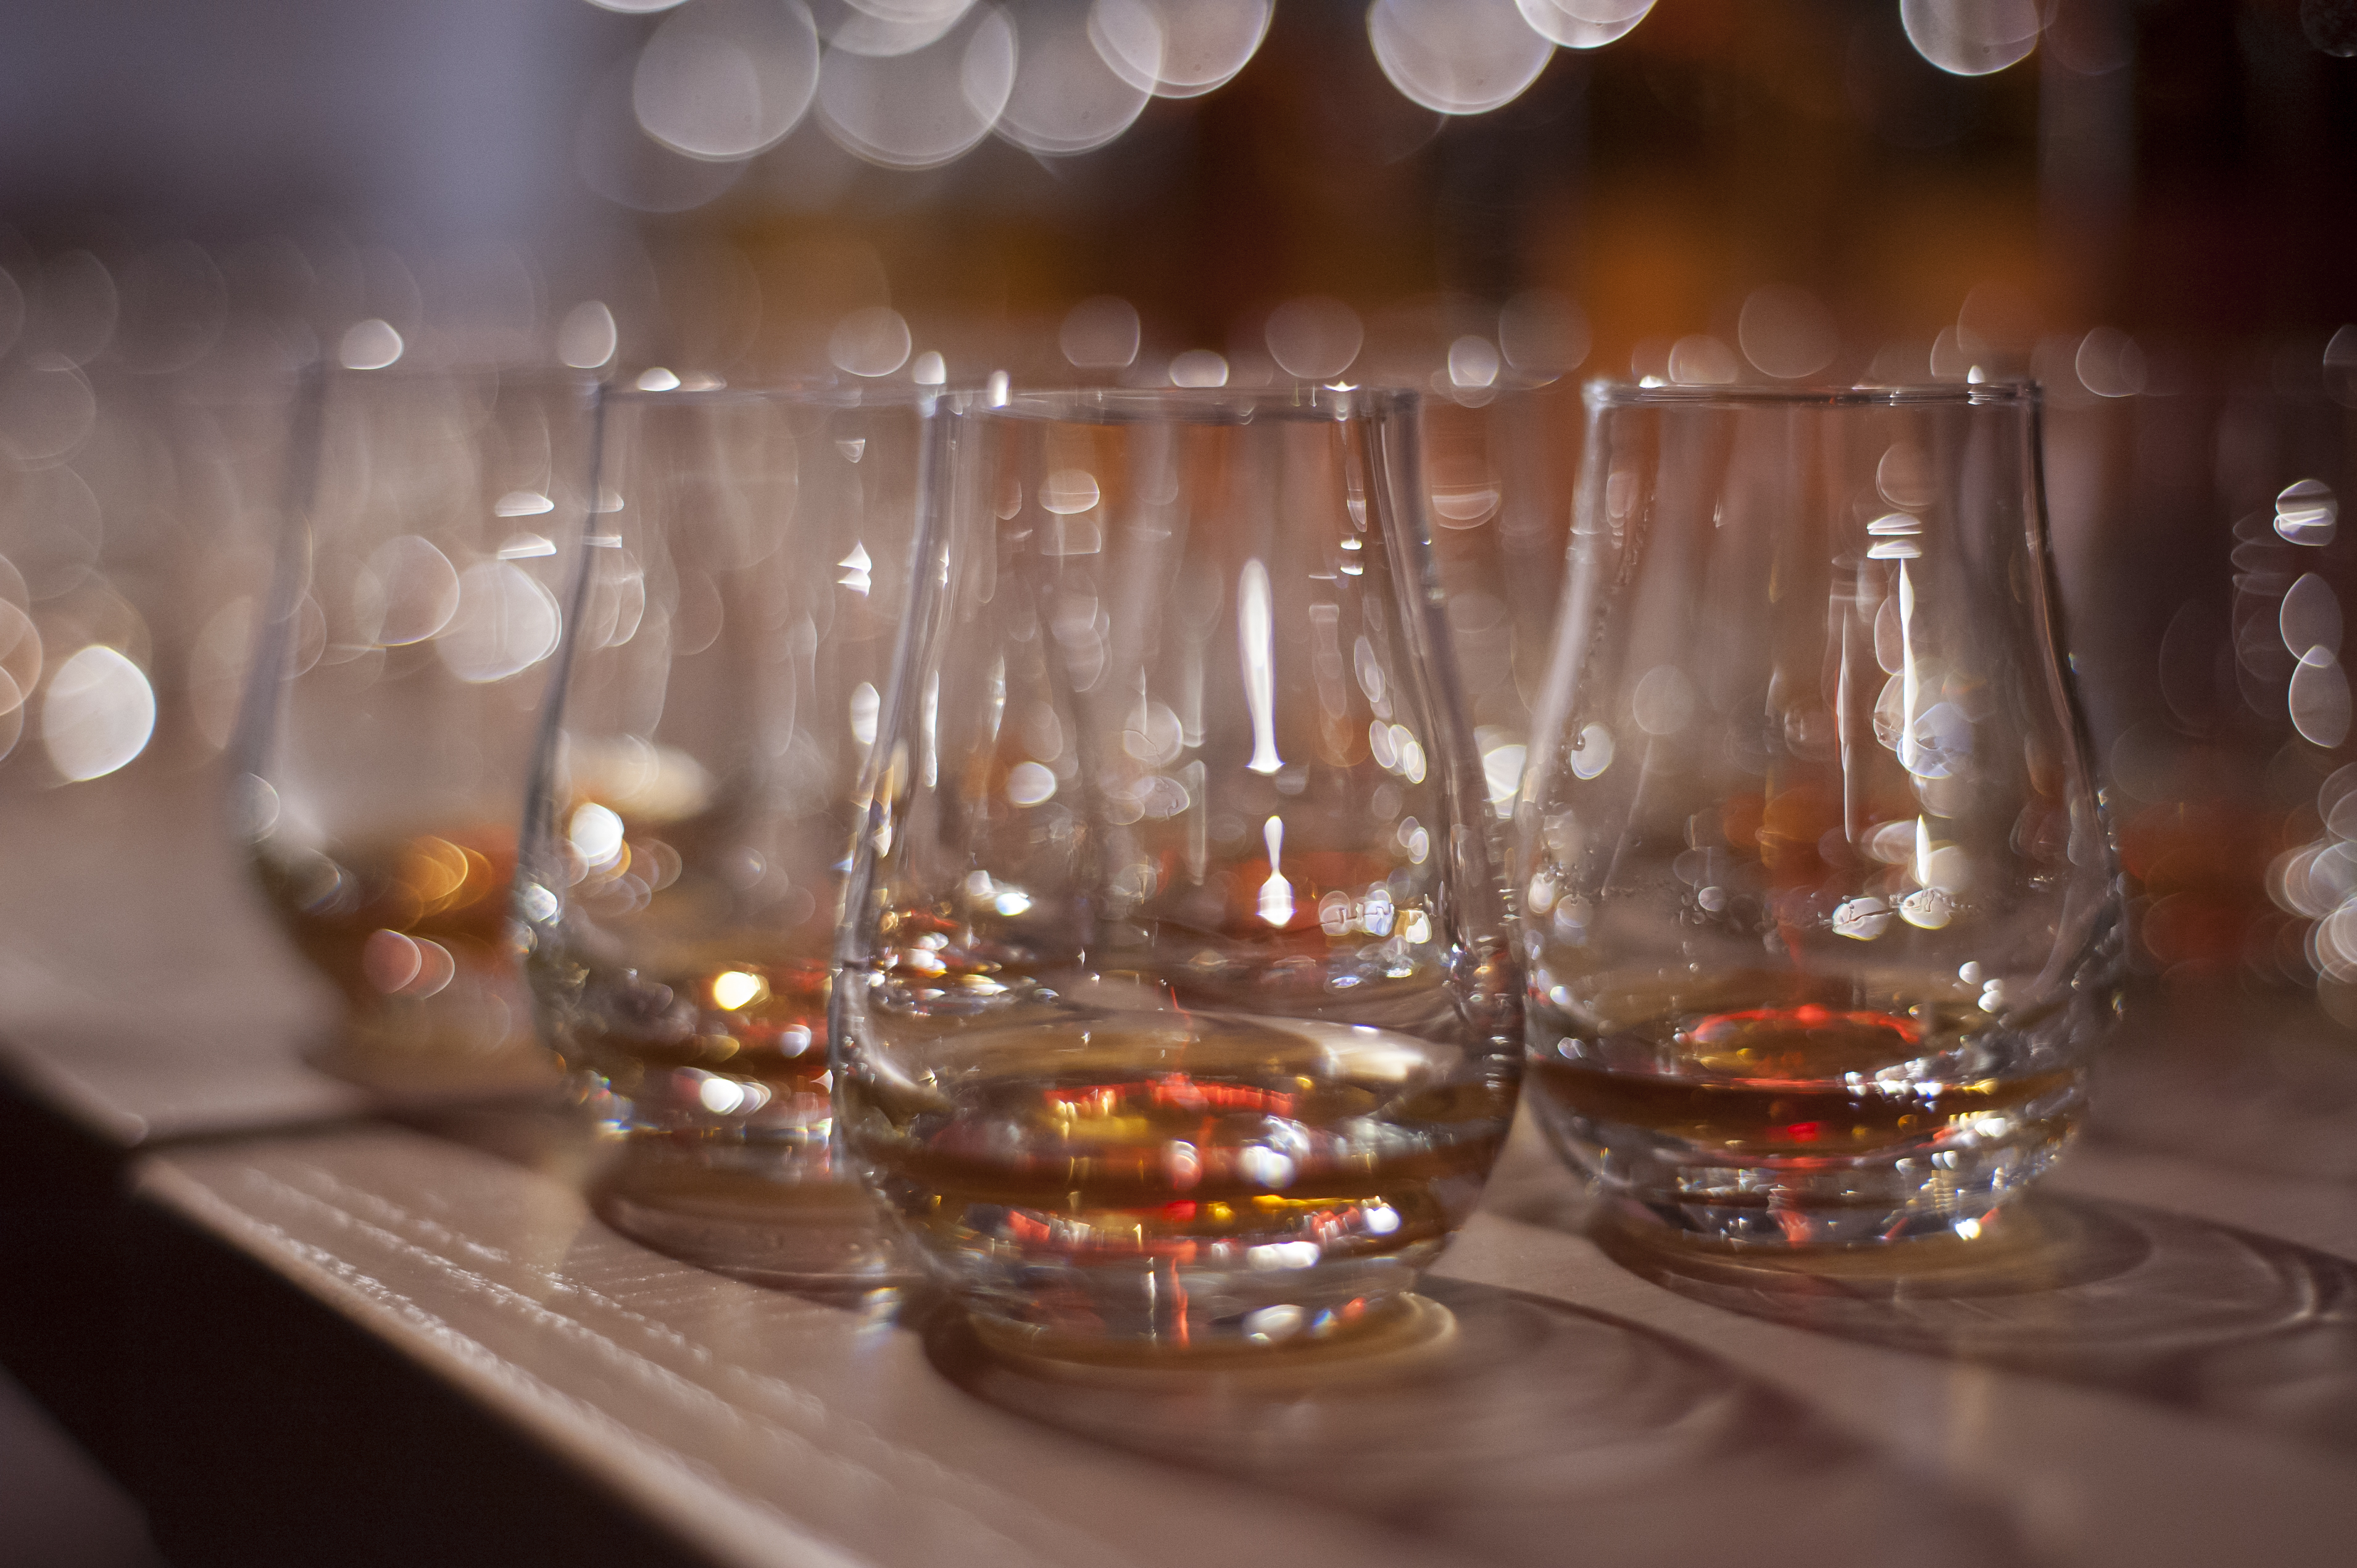 The Macallan Whisky Lounge